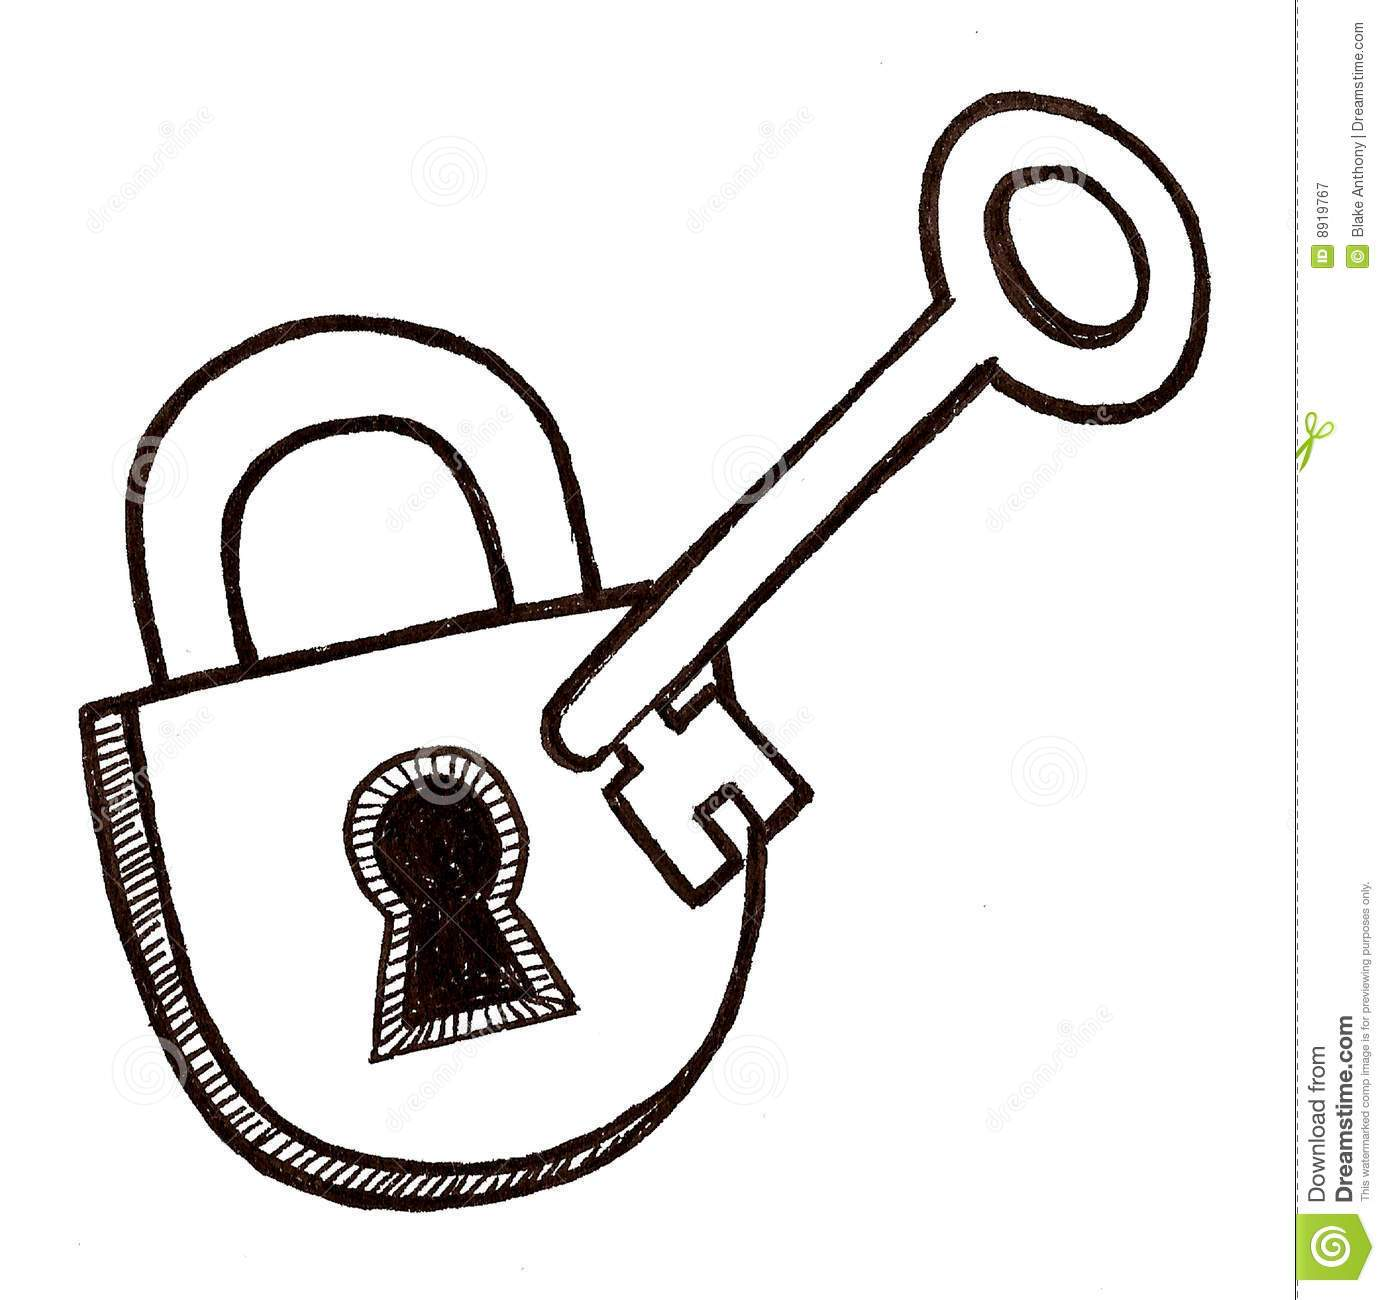 Lock and key clipart black and white 3 » Clipart Portal.